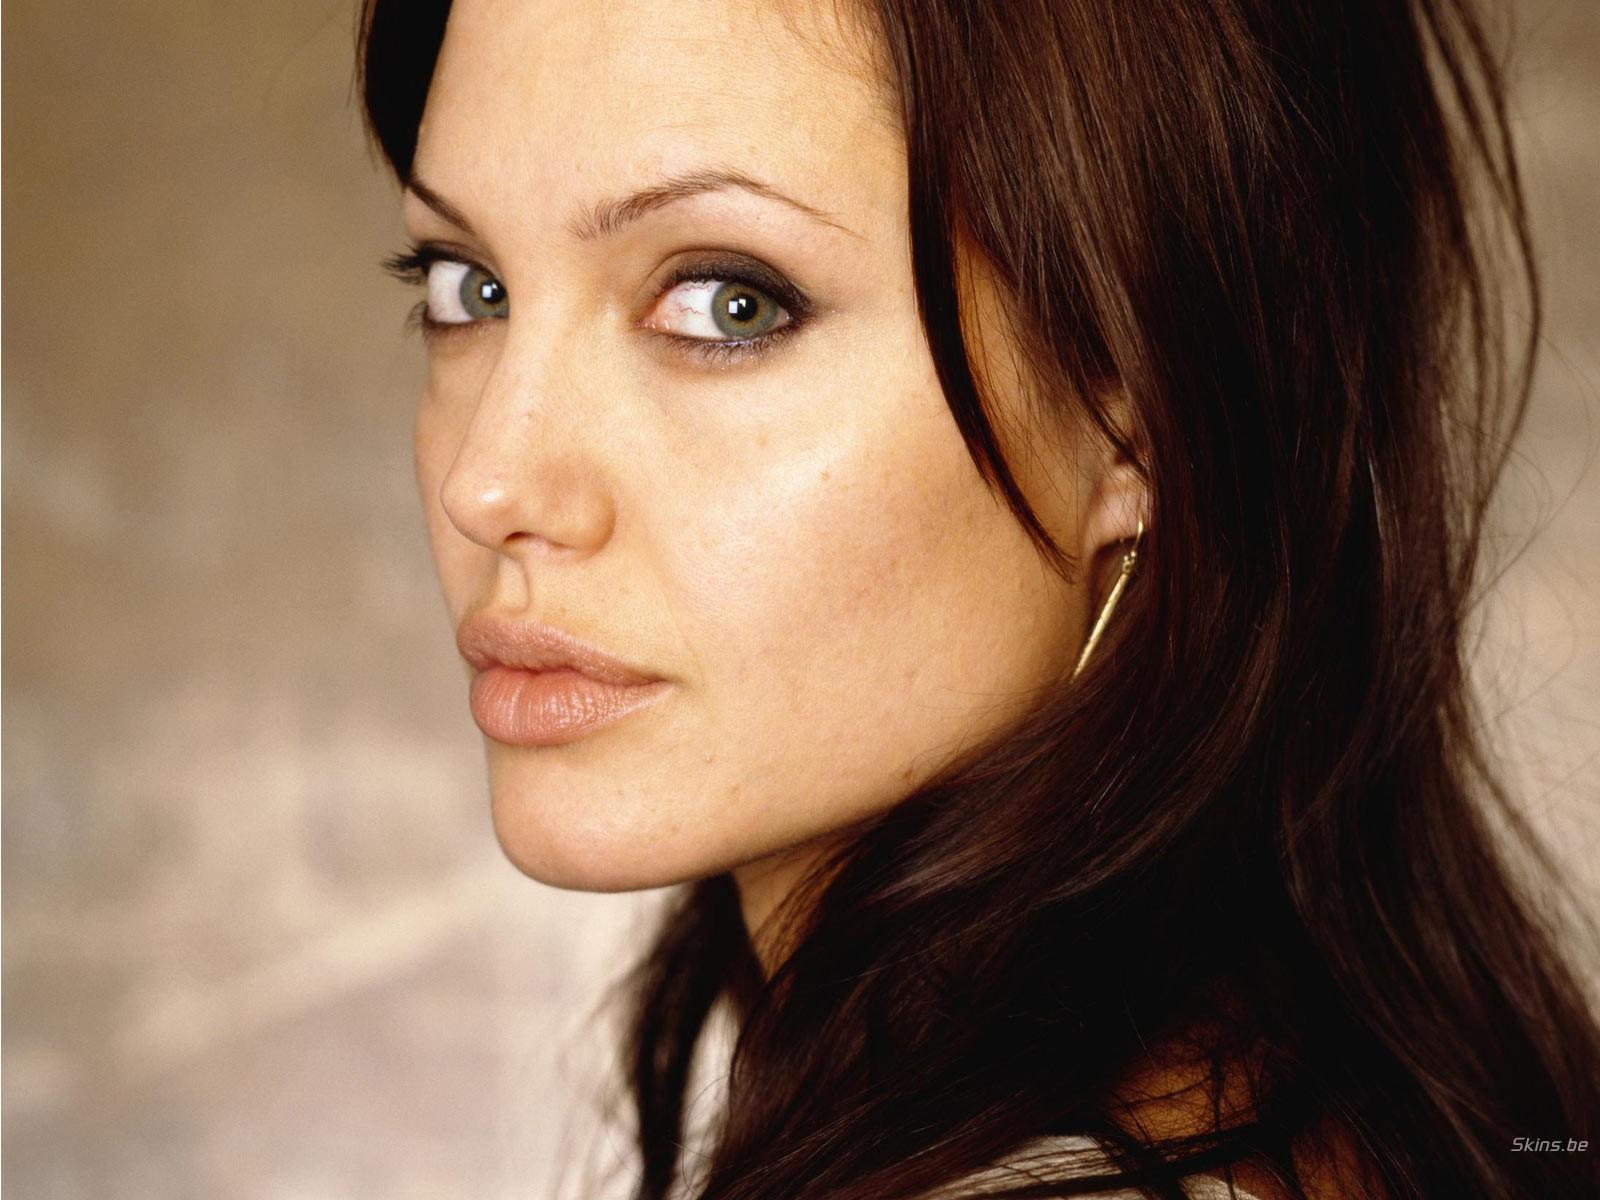 Angelina Jolie Wallpapers Hd Wallpapers HD Wallpapers Download Free Images Wallpaper [1000image.com]